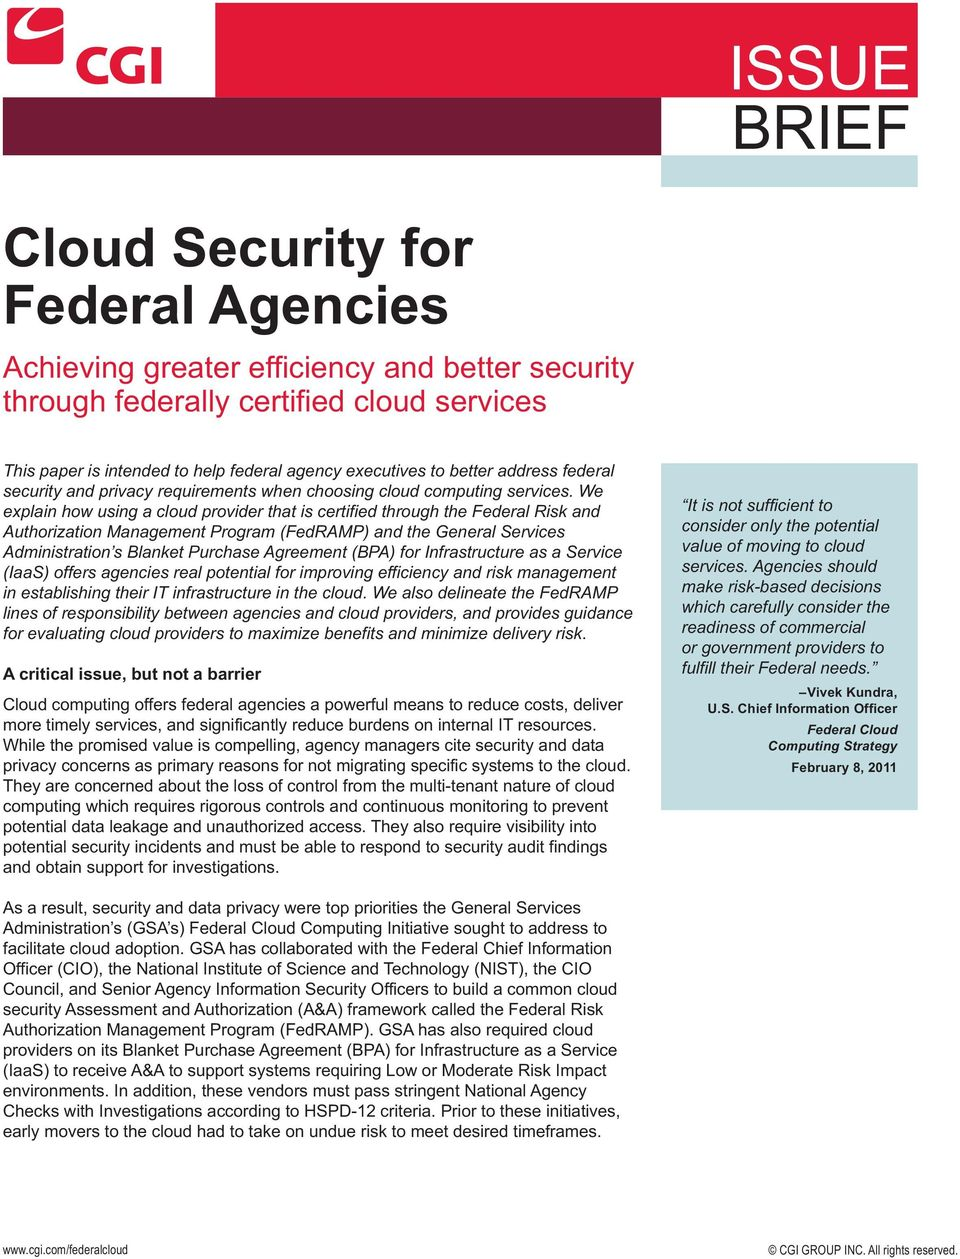 We explain how using a cloud provider that is certified through the Federal Risk and Authorization Management Program (FedRAMP) and the General Services Administration s Blanket Purchase Agreement